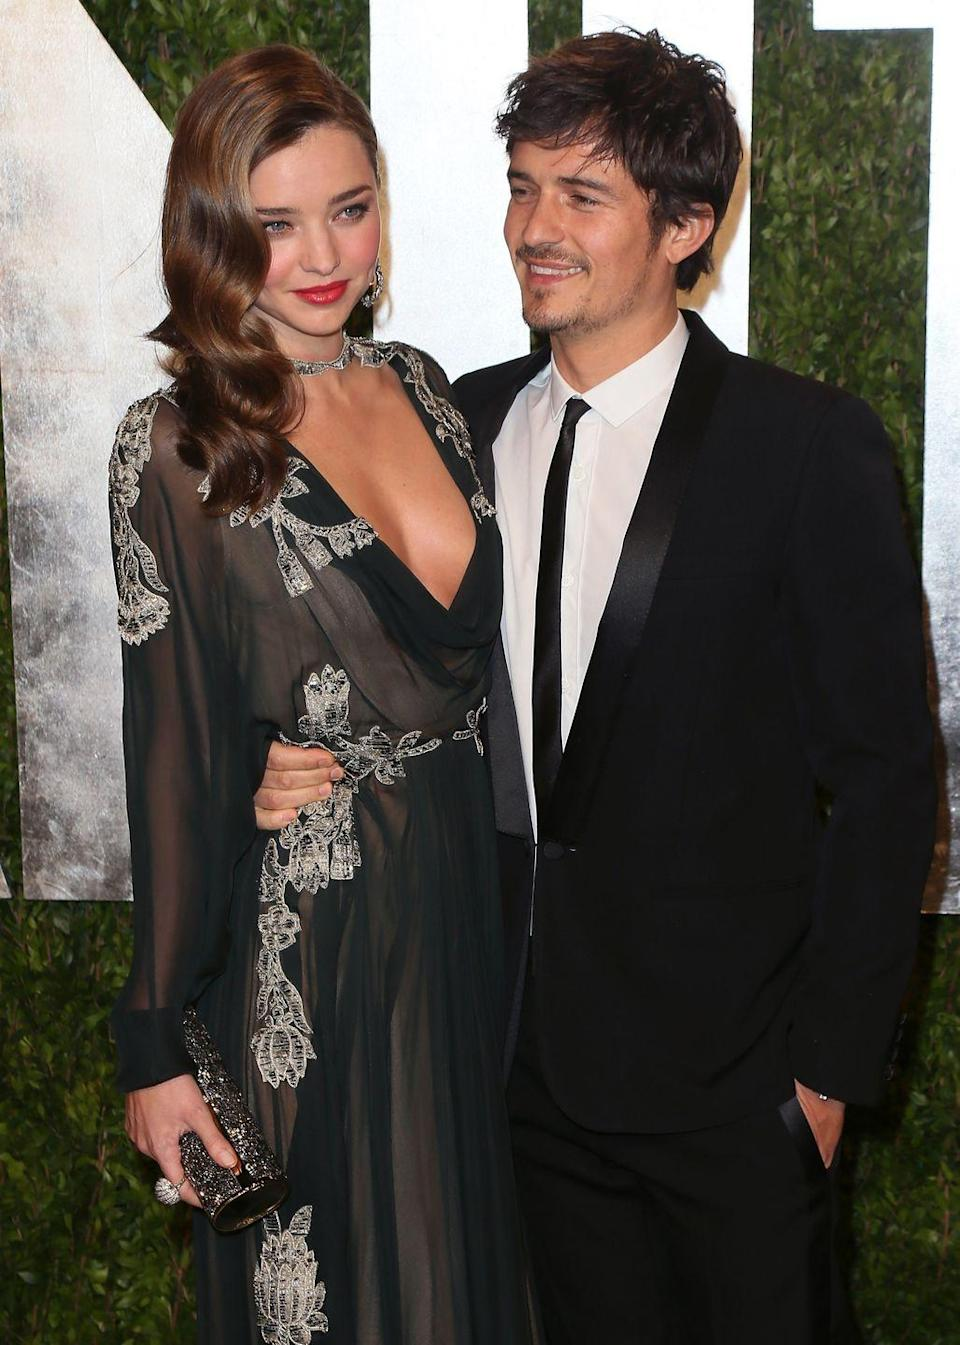 """<p>Kerr was married to Bloom for three years. They divorced in 2013, but remain close friends. The reason for the split? In an interview with <em><a href=""""https://go.redirectingat.com?id=74968X1596630&url=https%3A%2F%2Fwww.net-a-porter.com%2Fus%2Fen%2Fporter%2Farticle-5e7e82f8aee780d0%2Fcover-stories%2Fcover-stories%2Fmiranda-kerr-interview&sref=https%3A%2F%2Fwww.harpersbazaar.com%2Fcelebrity%2Fg37444336%2Fcelebrities-marriage-after-divorce%2F"""" rel=""""nofollow noopener"""" target=""""_blank"""" data-ylk=""""slk:The Edit"""" class=""""link rapid-noclick-resp"""">The Edit</a>,</em> Kerr said, """"We weren't bringing out the best in each other.""""</p>"""